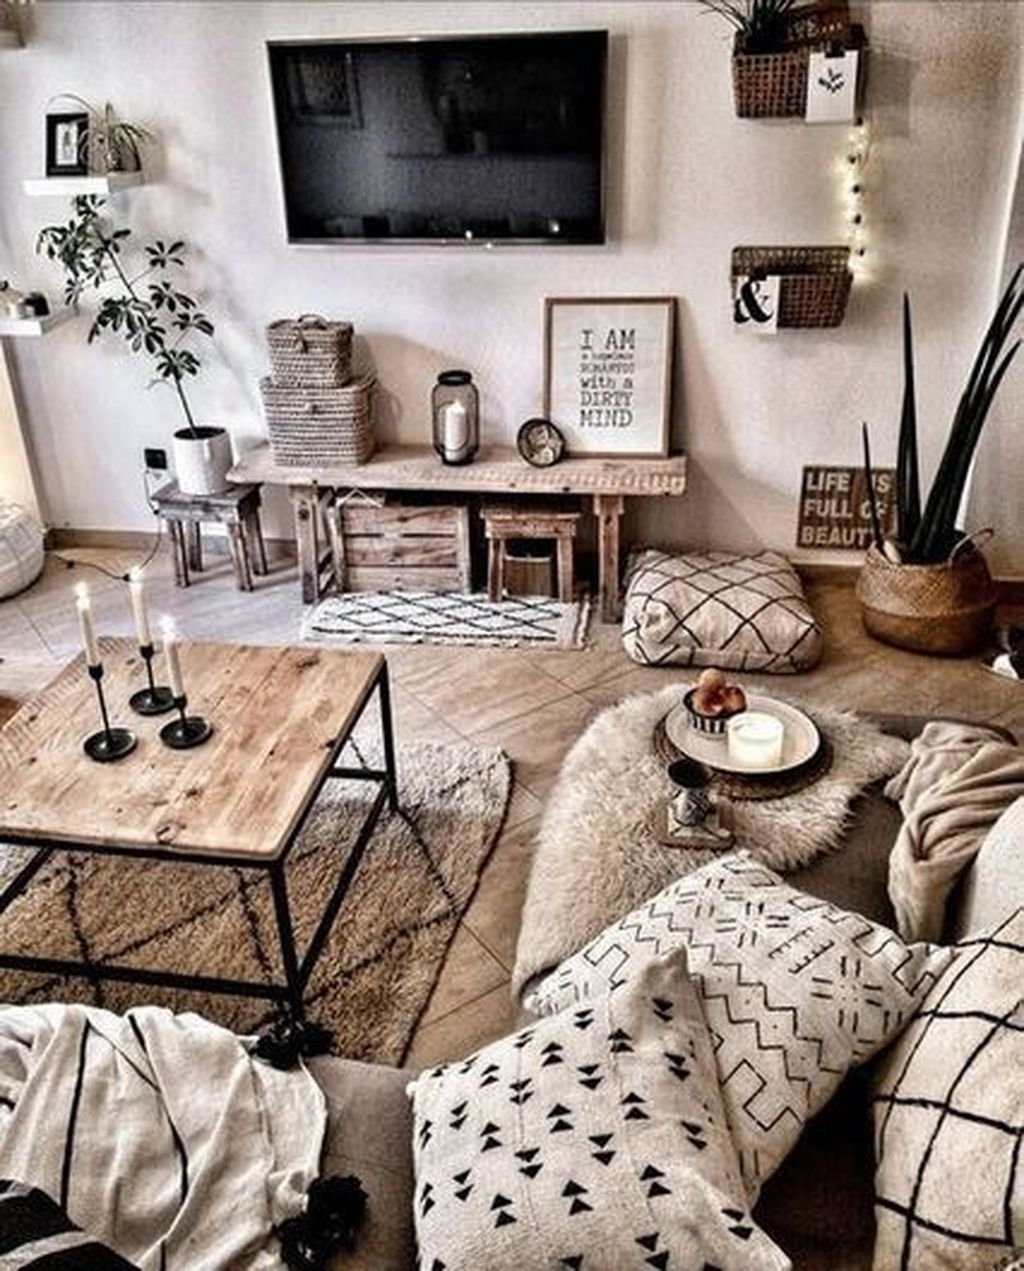 39 Classy Home Decor Ideas For Home Look Fabulous Apartment Living Room Design Simple Living Room Decor Rustic Living Room Furniture Pinterest rustic living room